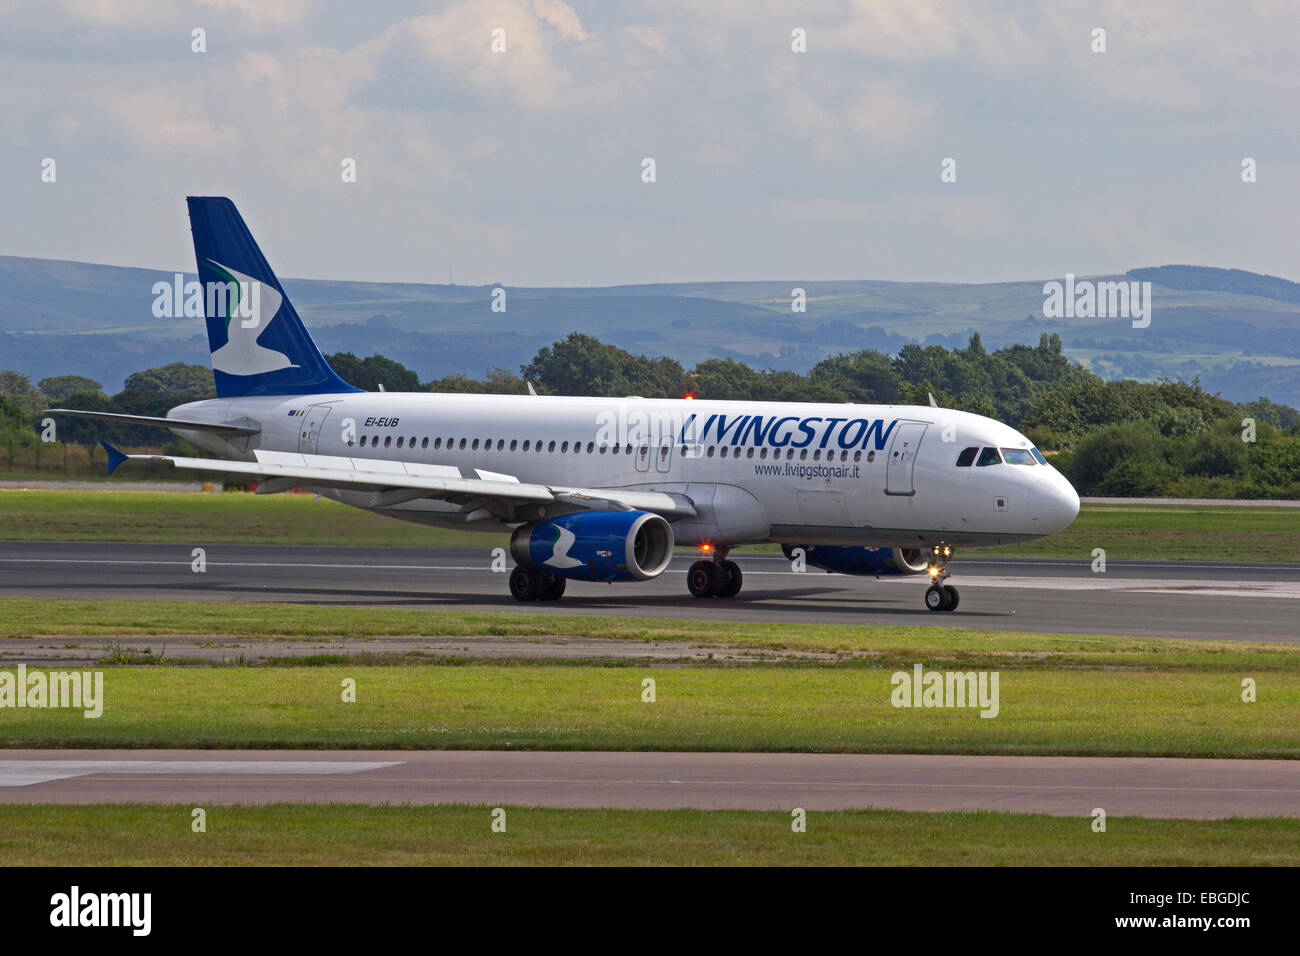 Livingston Airbus A320-232 taxiing at Manchester Airport - Stock Image